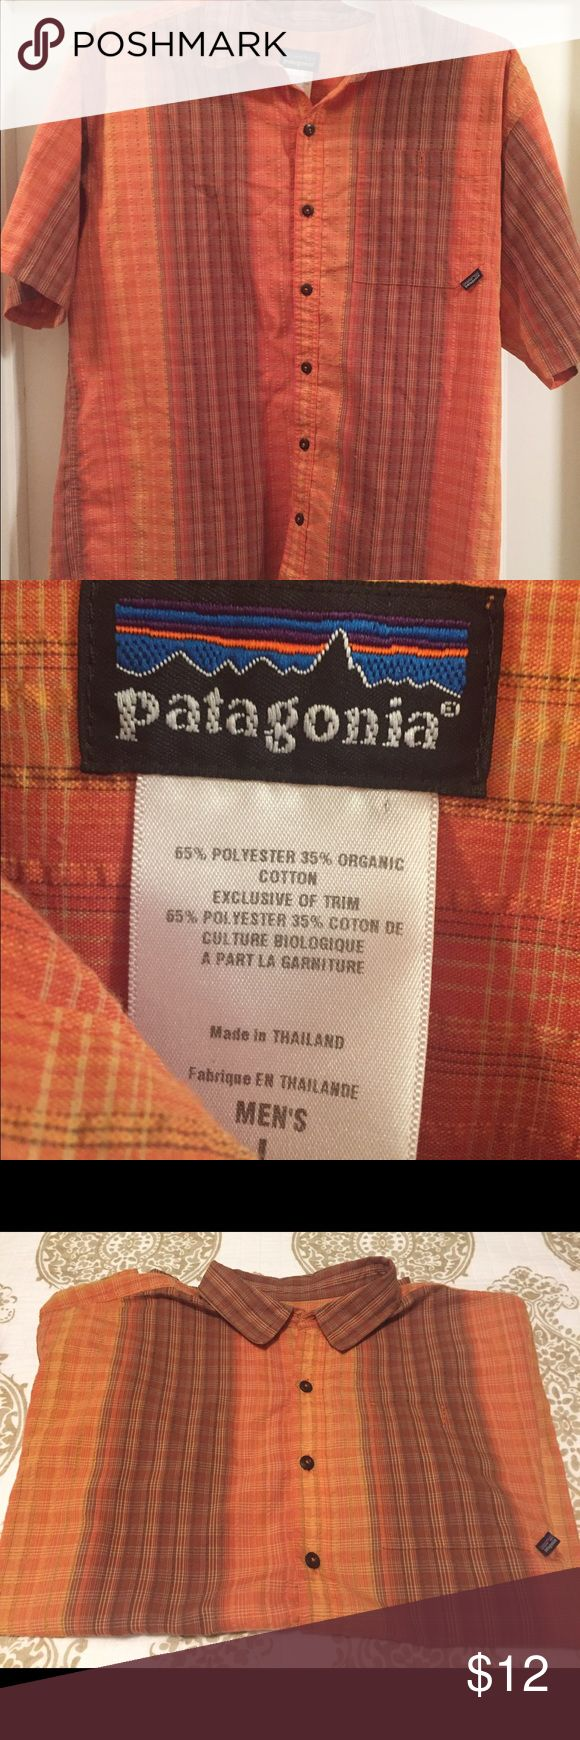 Men's Patagonia short sleeve button front Large The shirt is in very good condition, however, it is missing the very top collar button as pictured. Size large Patagonia Shirts Casual Button Down Shirts